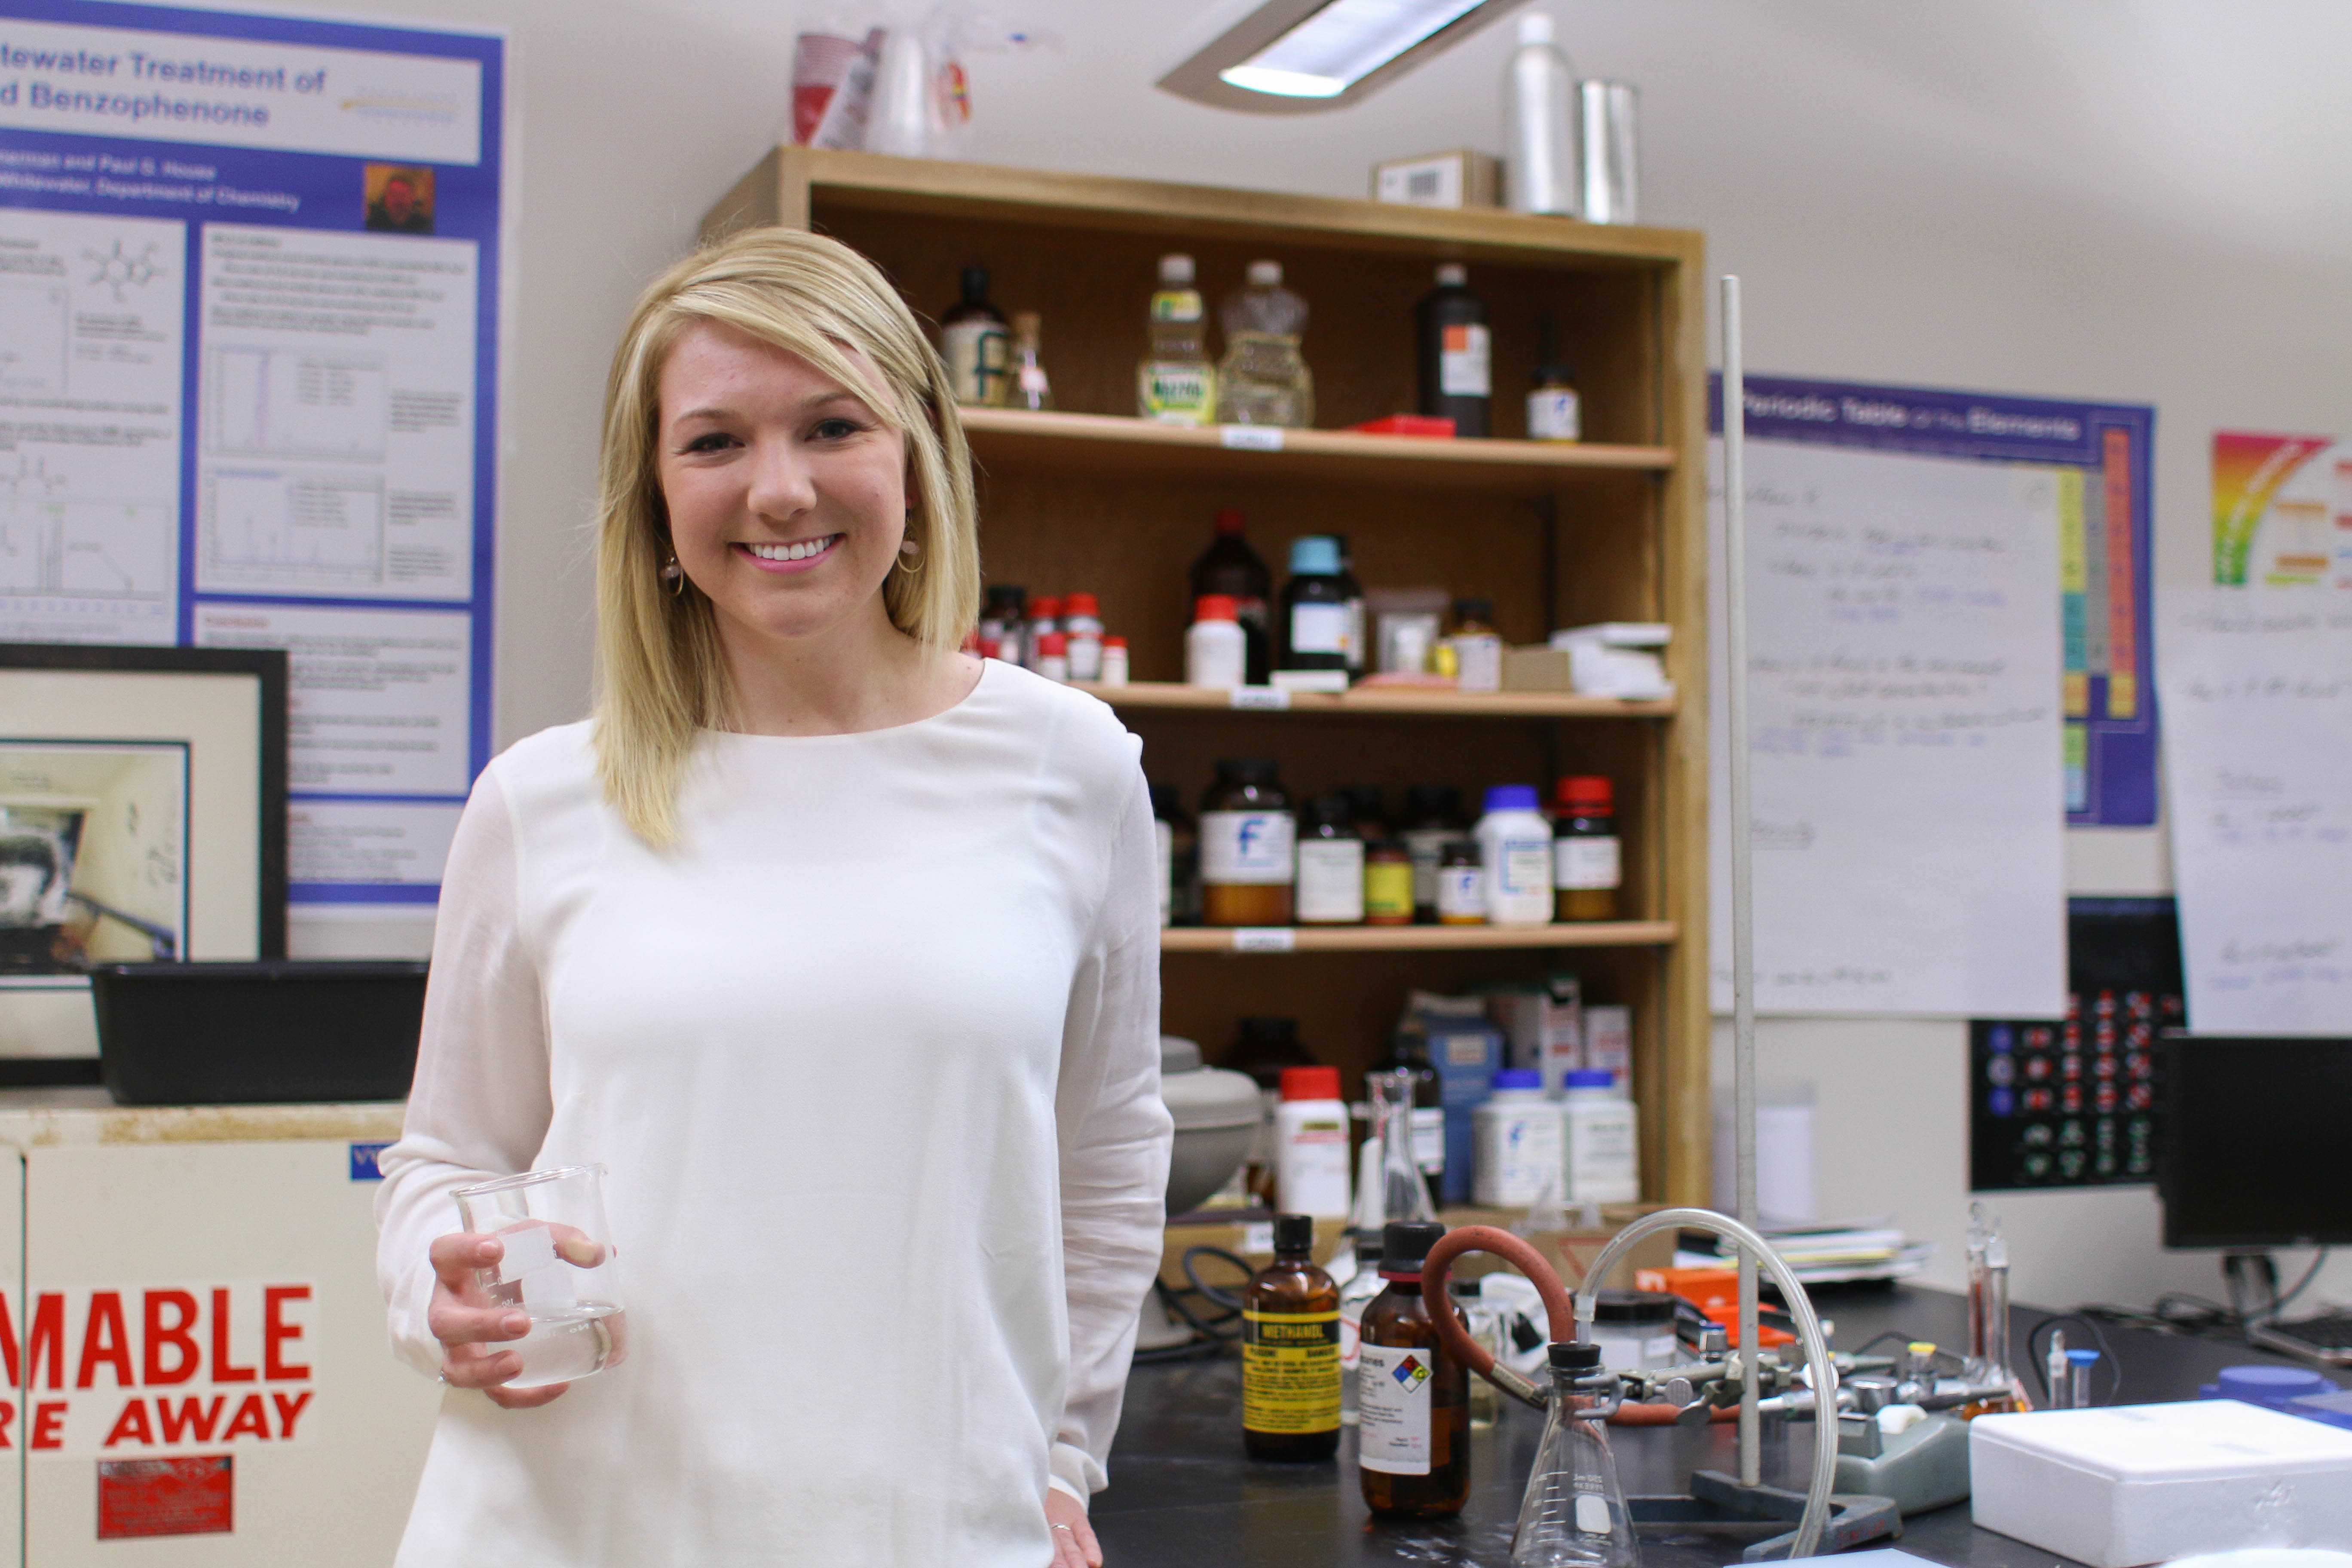 Biology major Lauren Kats holds a beaker in an Upham Hall chemistry lab, where she did her work as an undergraduate researcher. Kats is set to speak at UW-Whitewater's undergraduate commencement on May 14. Commencement will be divided between undergraduate and graduate degrees. Photo by Kimberly Wethal.